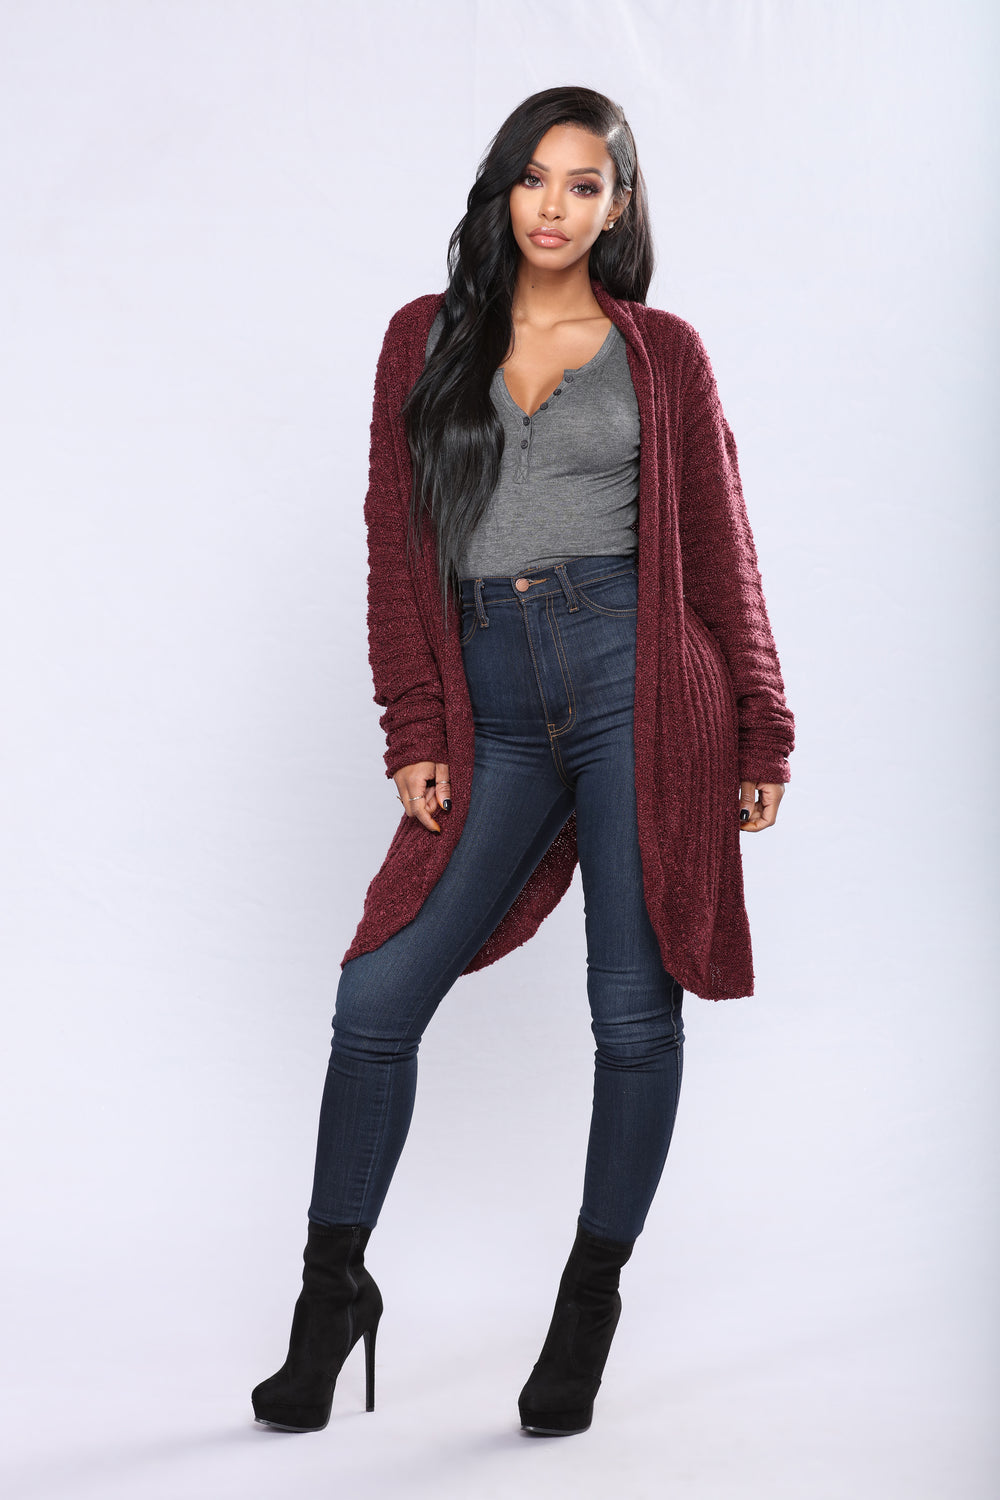 Shanit Split Back Cardigan - Wine